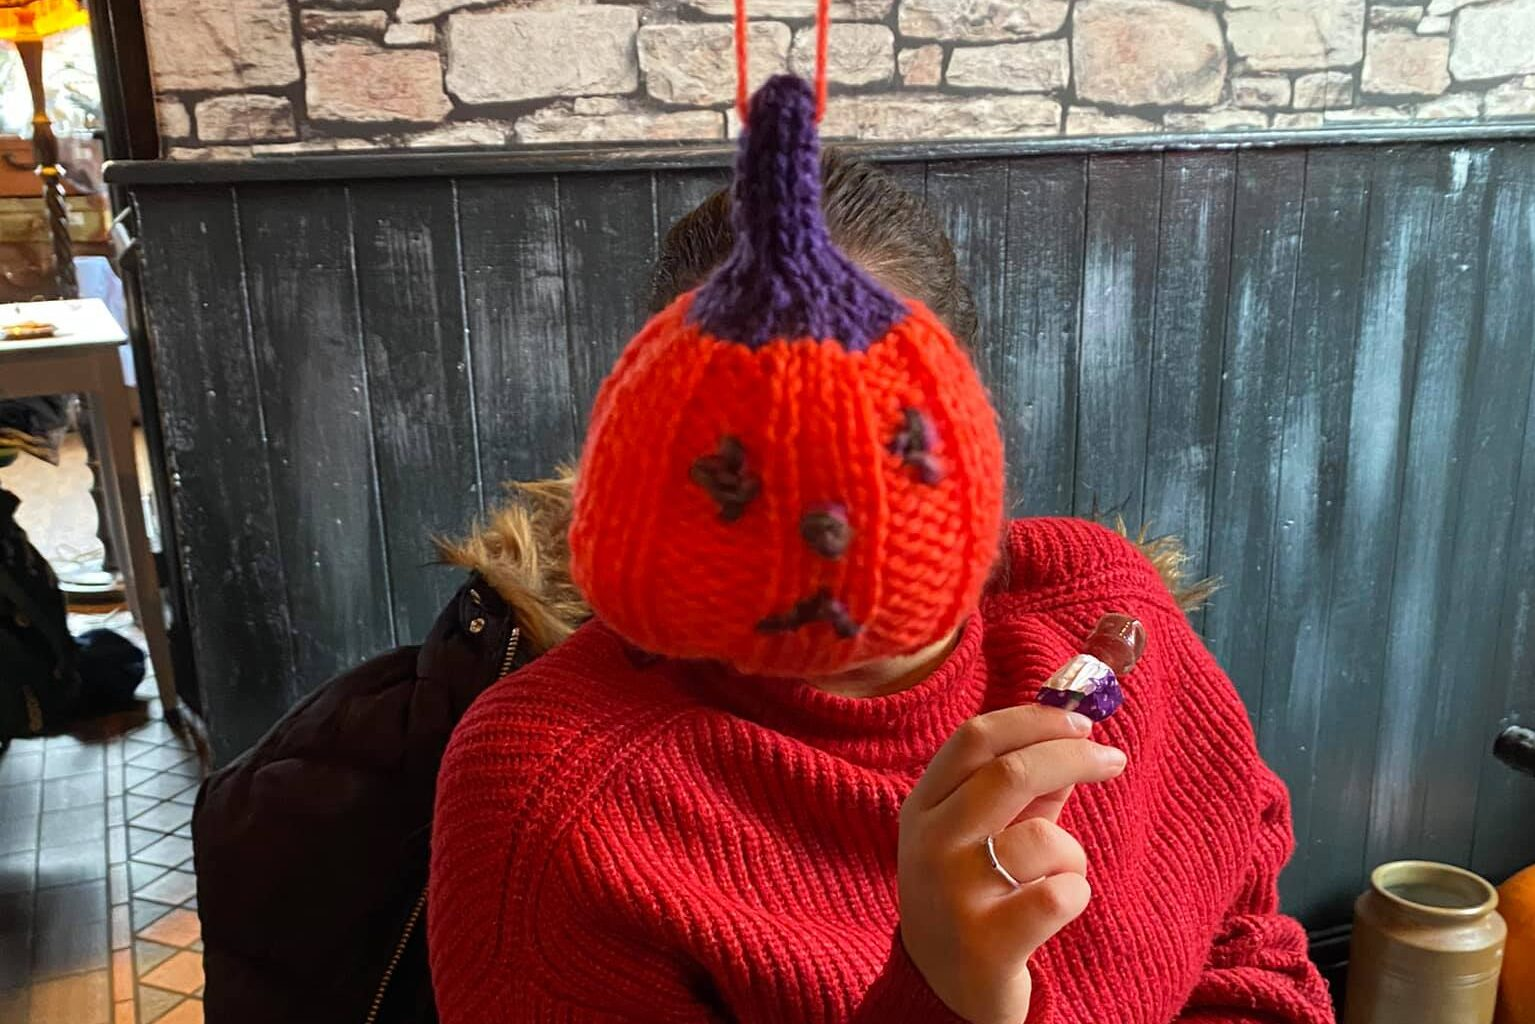 A knitted pumpkin gift was part of the Halloween experience.